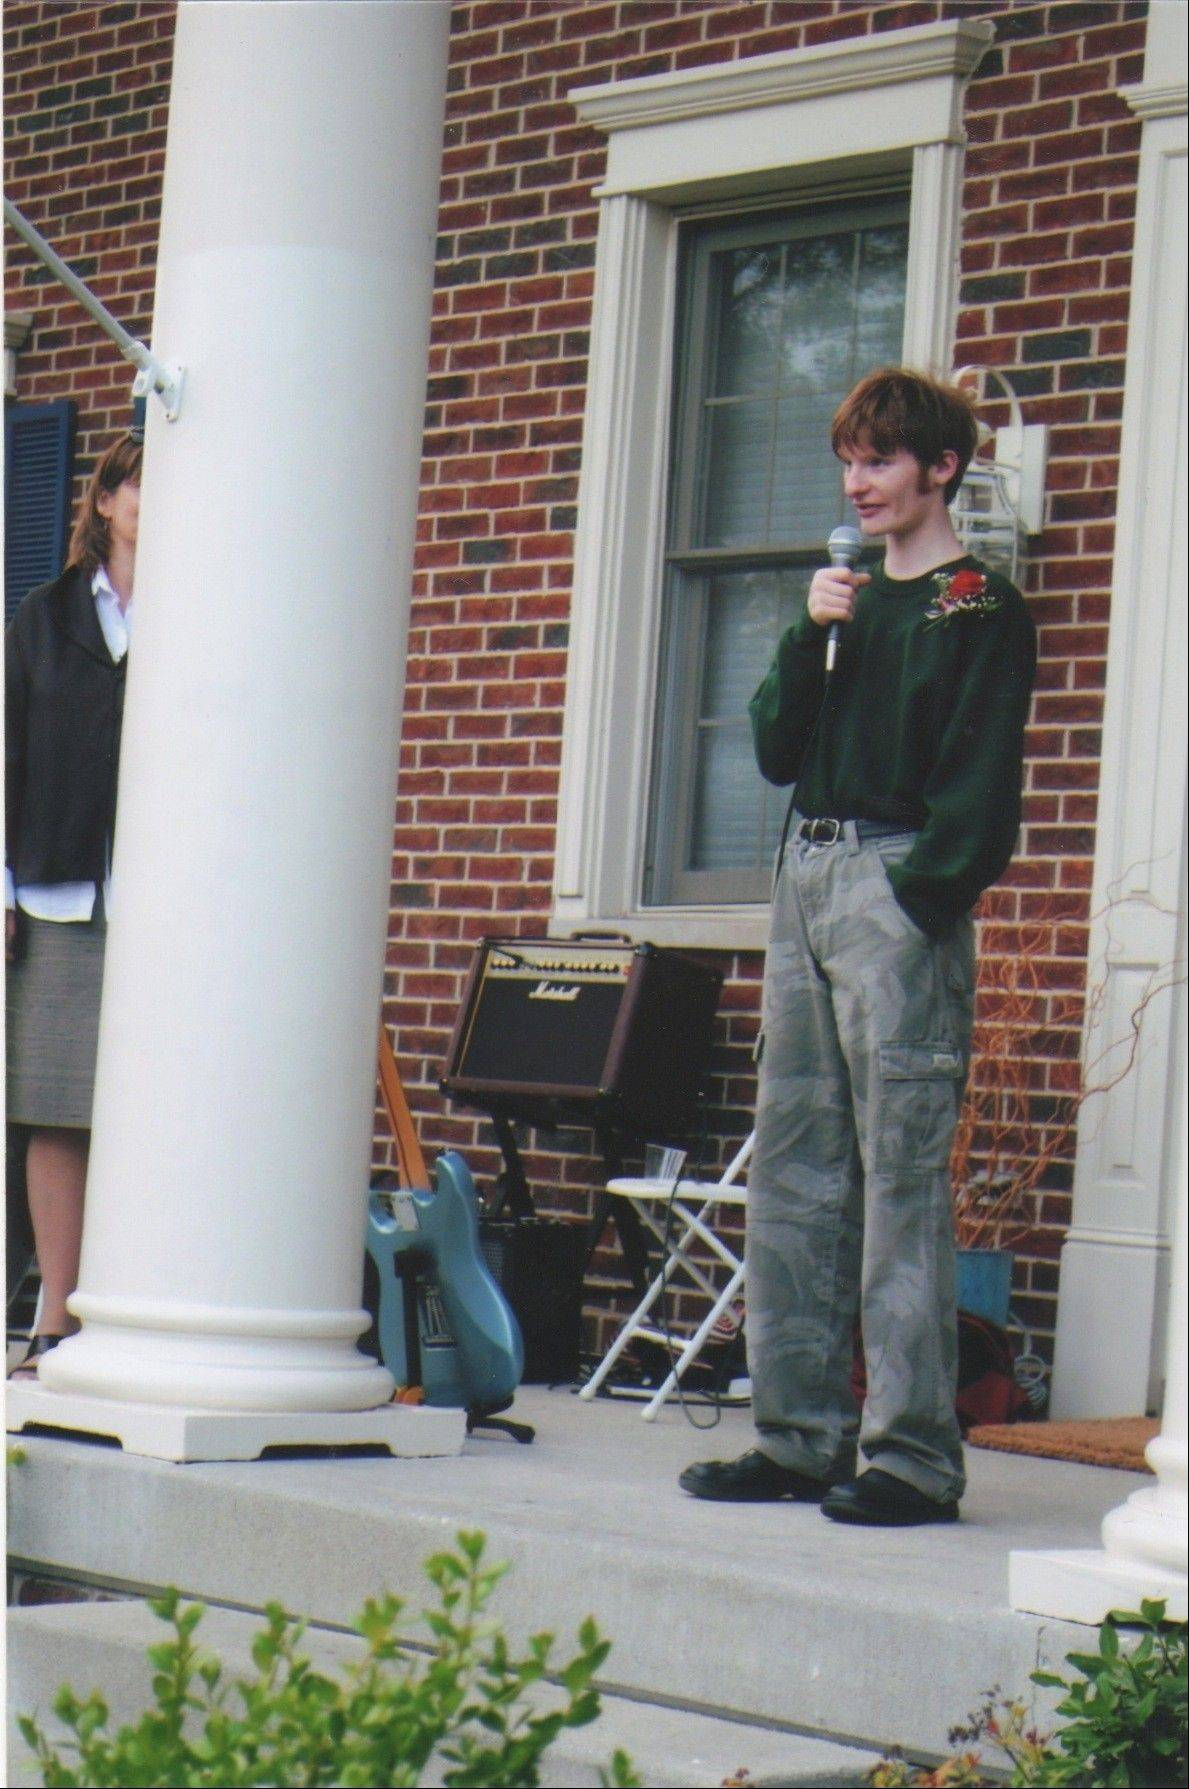 During the party celebrating his graduation from Mundelein High School in 2010, Nick Salvi makes a speech from the front of his home in Wauconda.